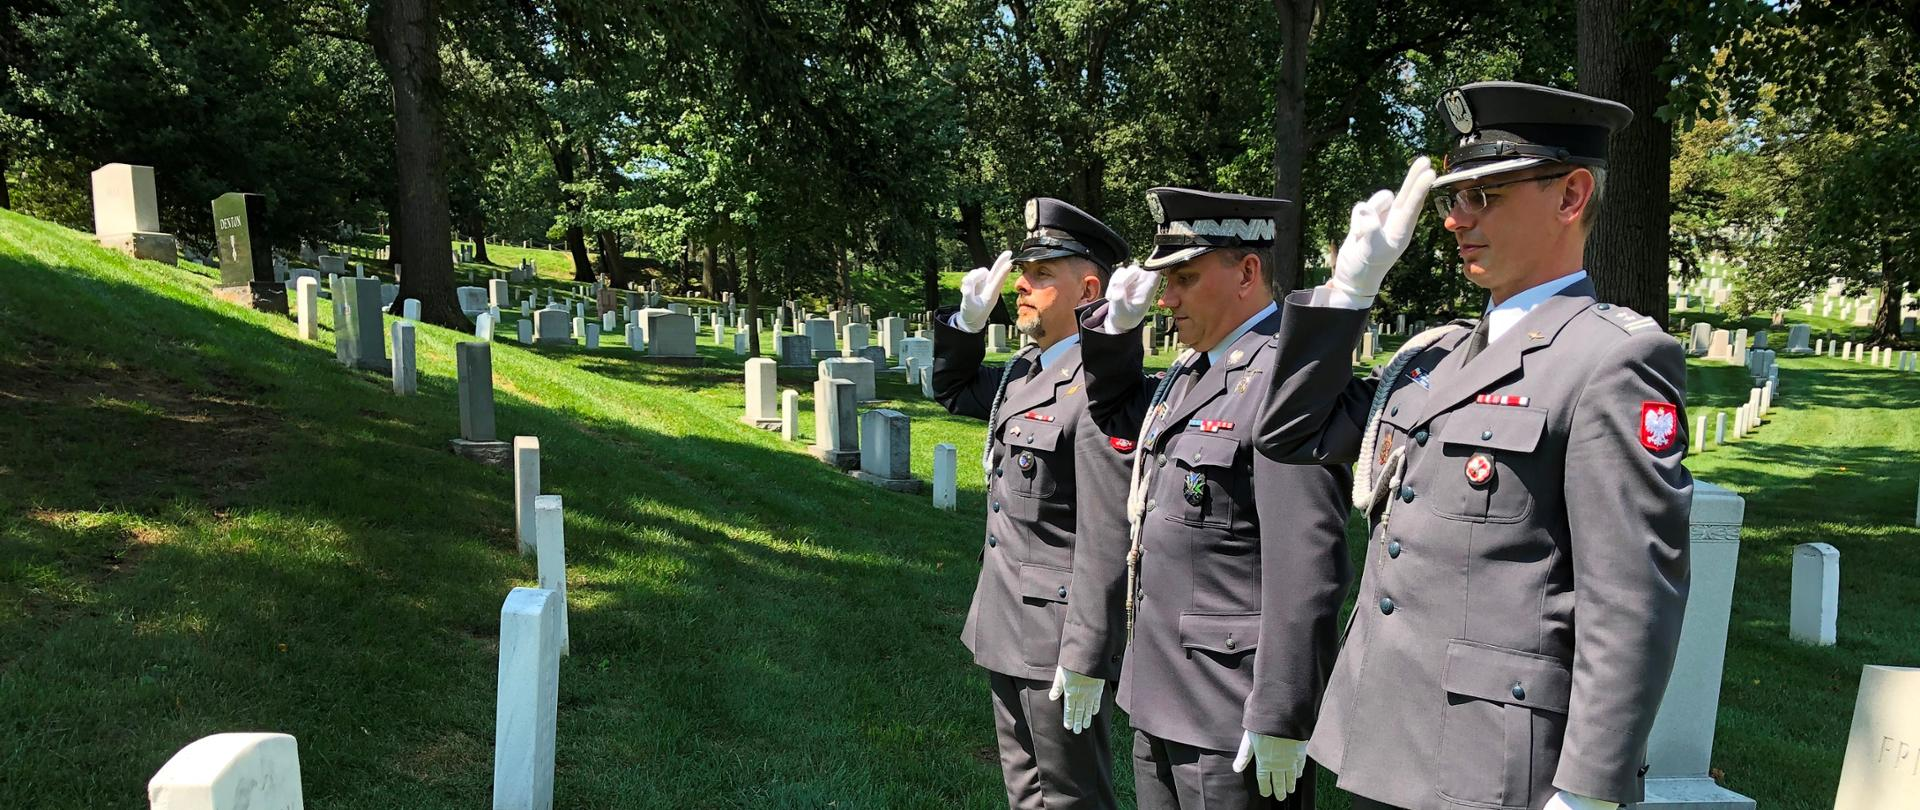 Tribute to American airmen who fought in the Polish-Bolshevik war of 1920